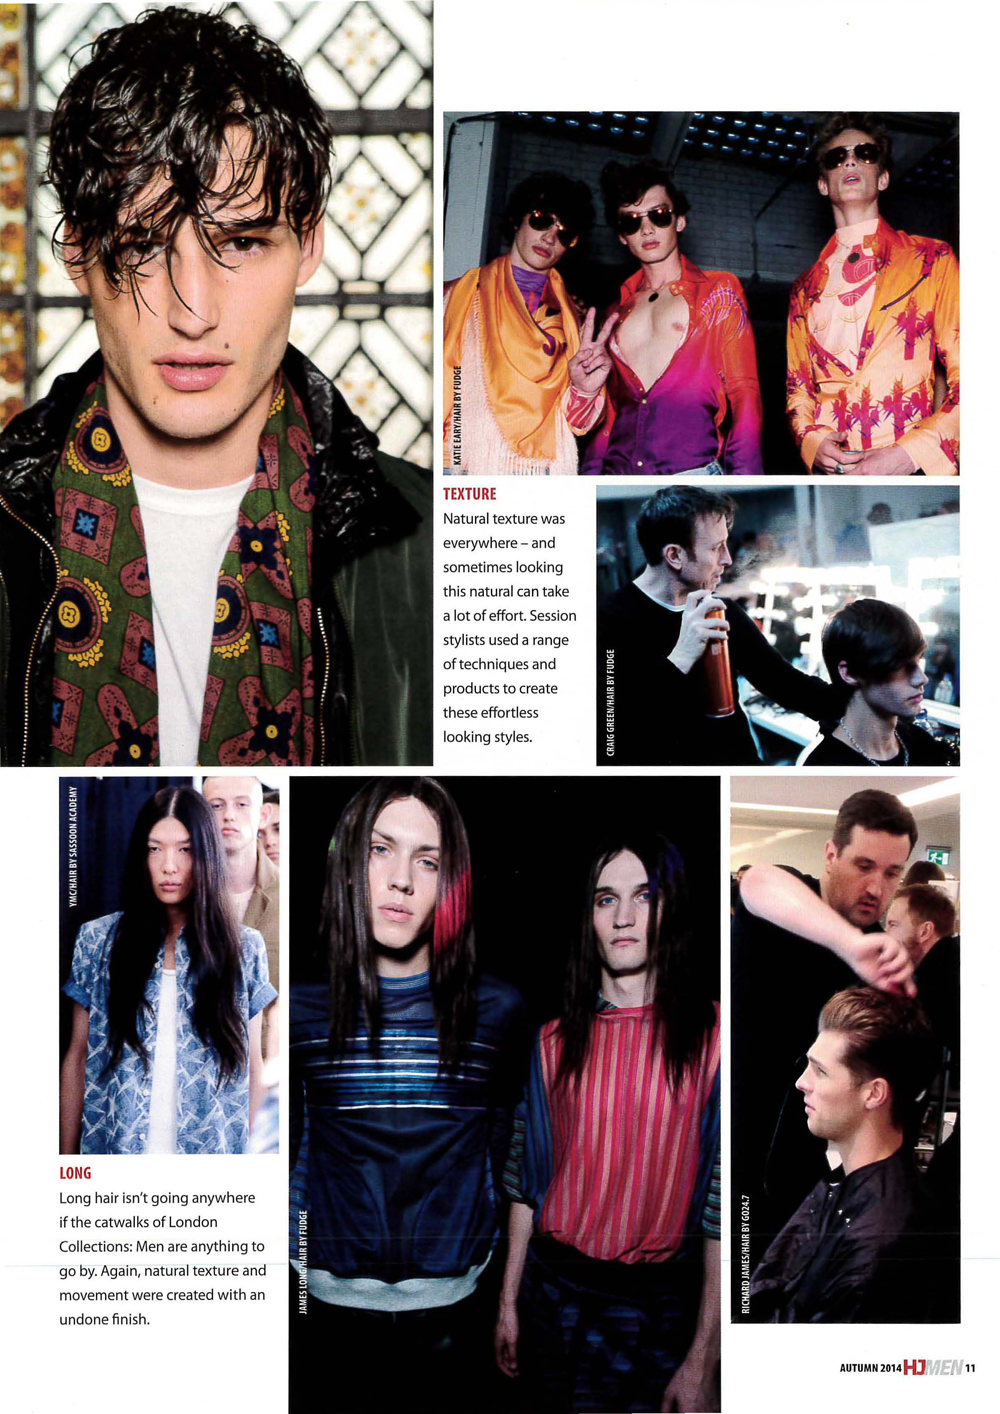 Hairdressers Journal MENS GUIDE featuring John Smedley image styled by H...-1